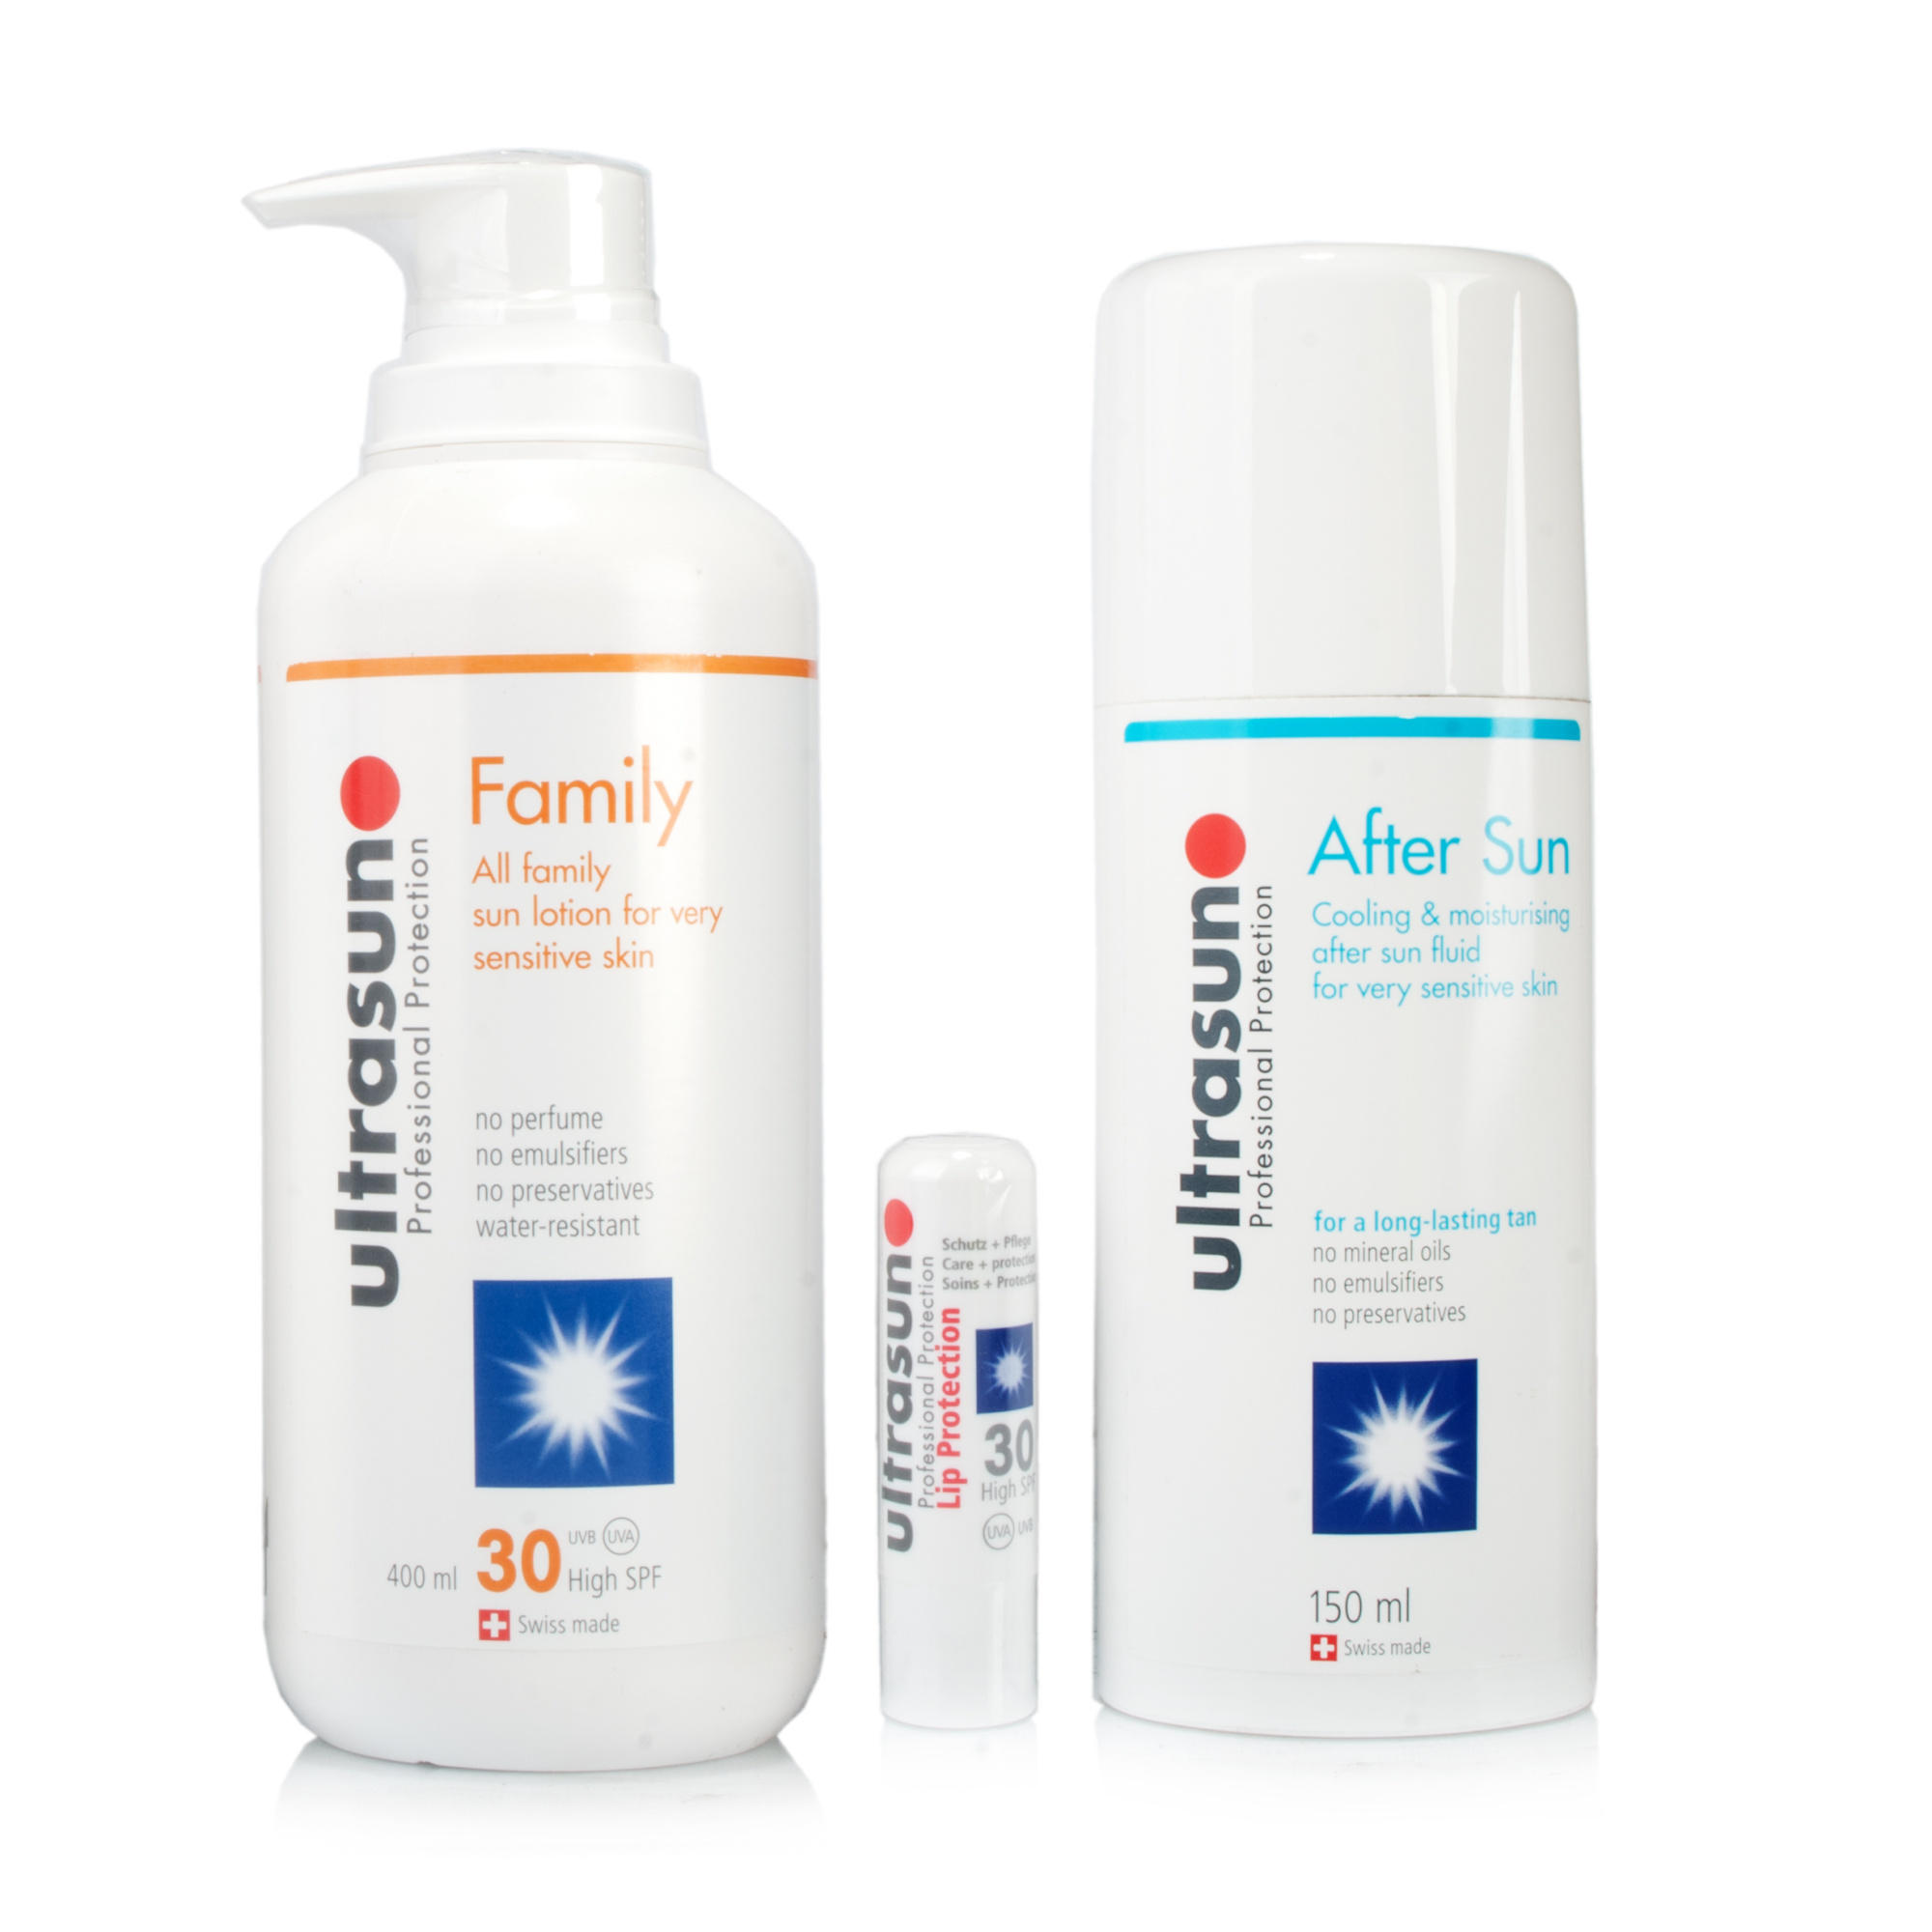 Ultrasun Family SPF30 Aftersun GelUltralip SPF30 3pc Set